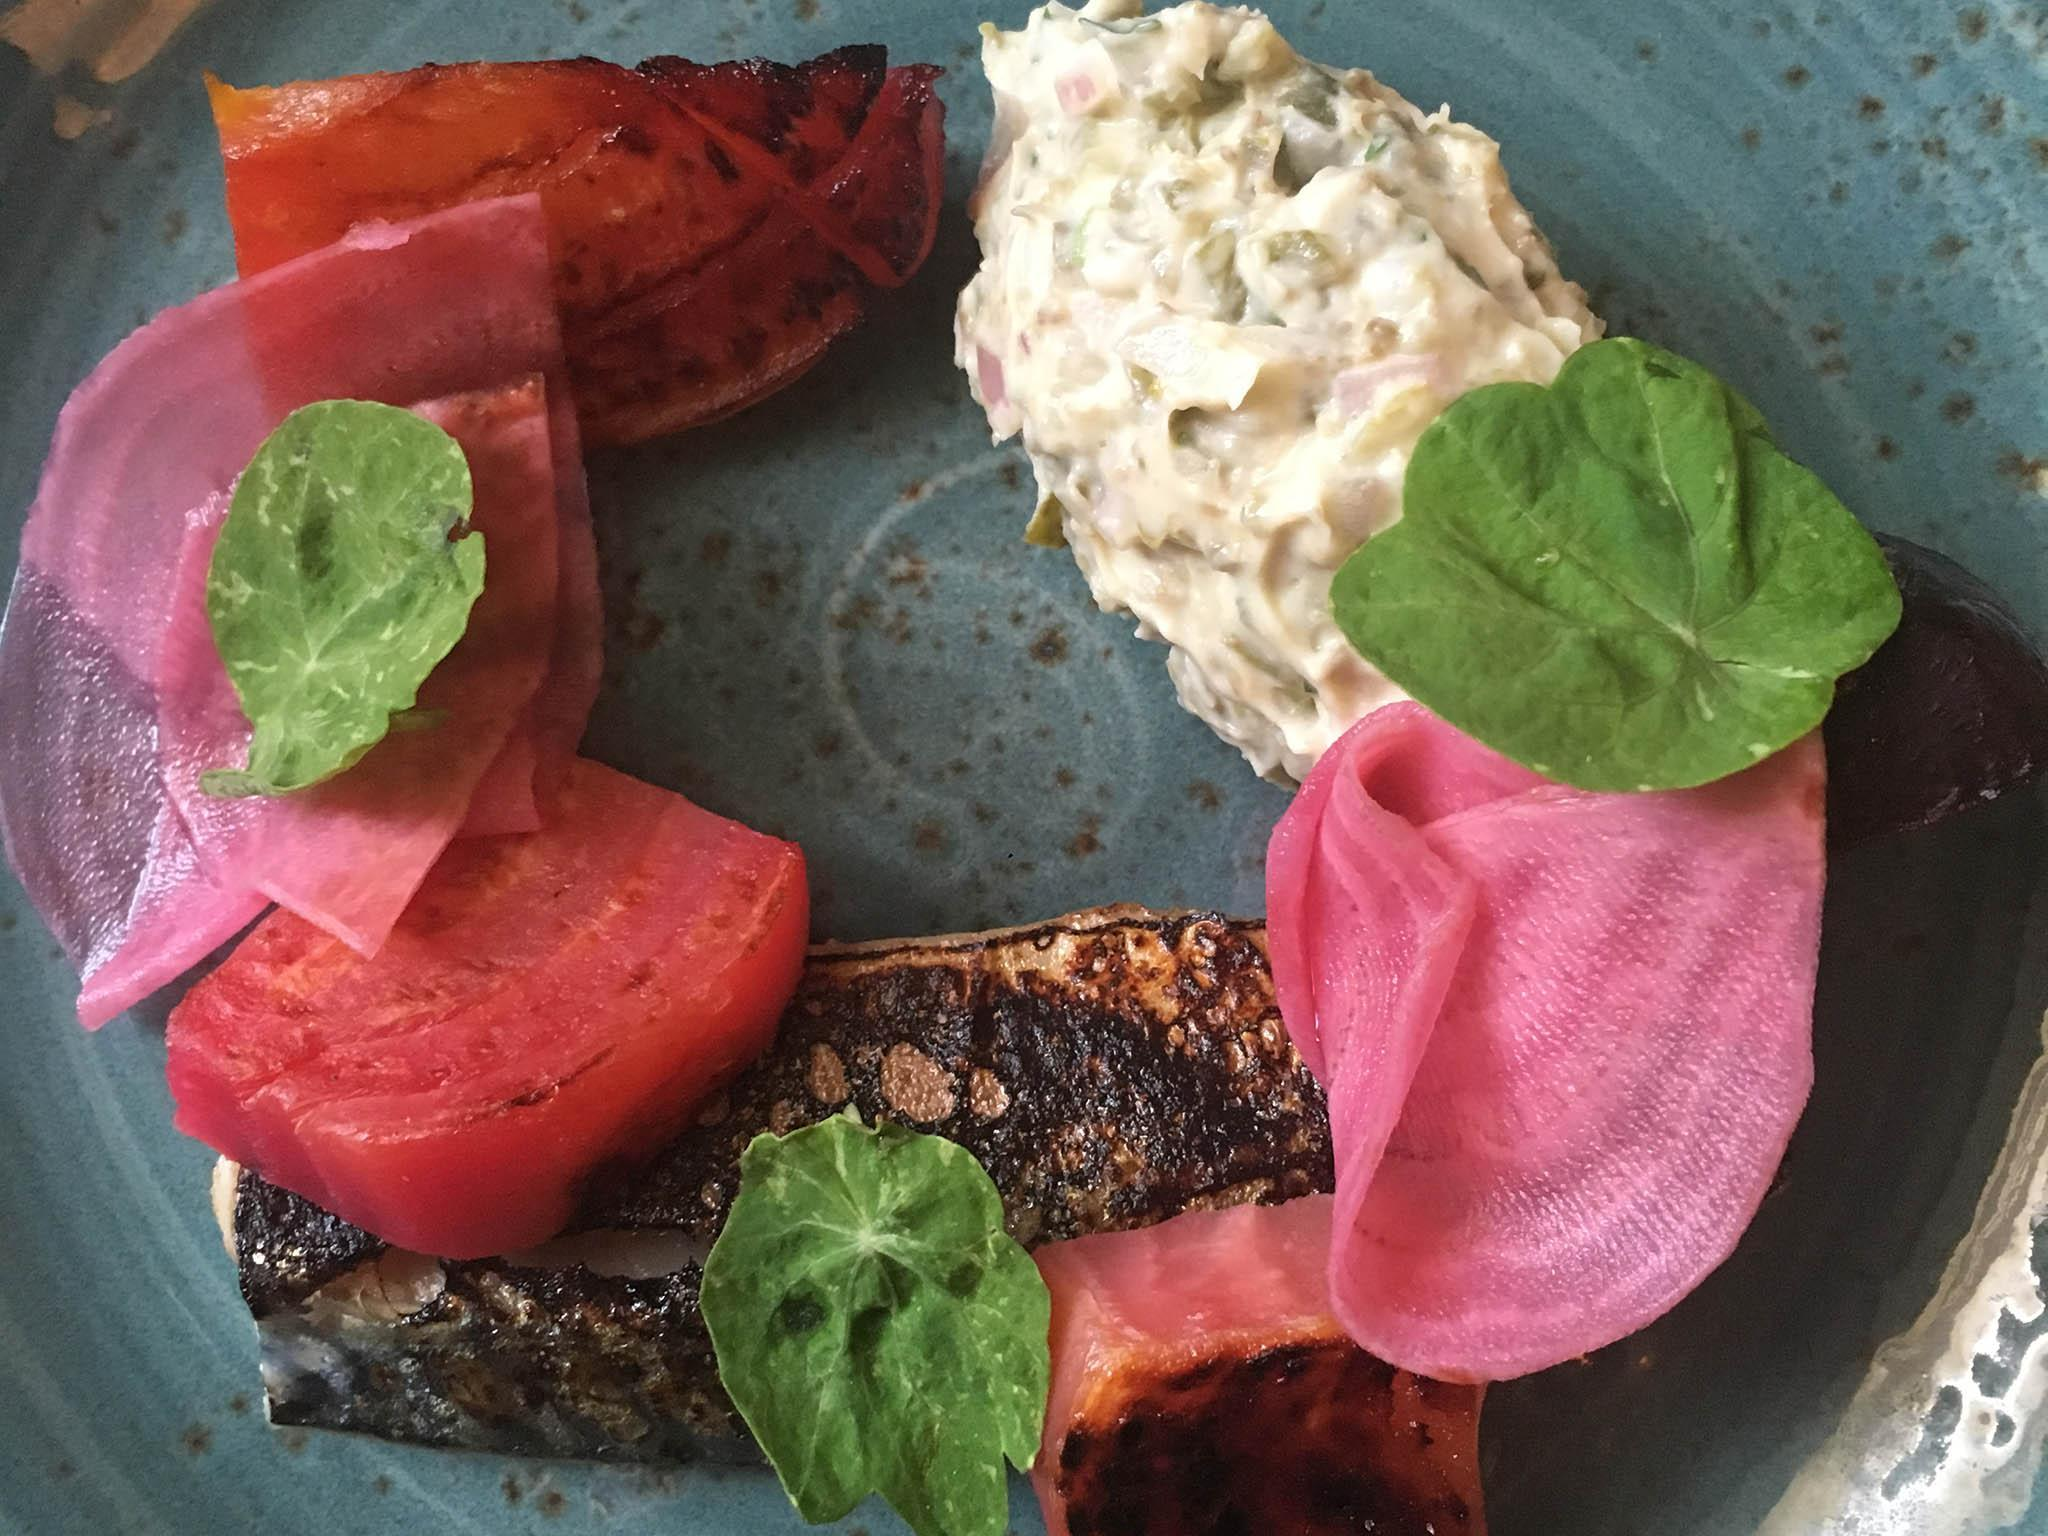 Brunch on Saturday: Tapas plates in Brighton and healthy fig